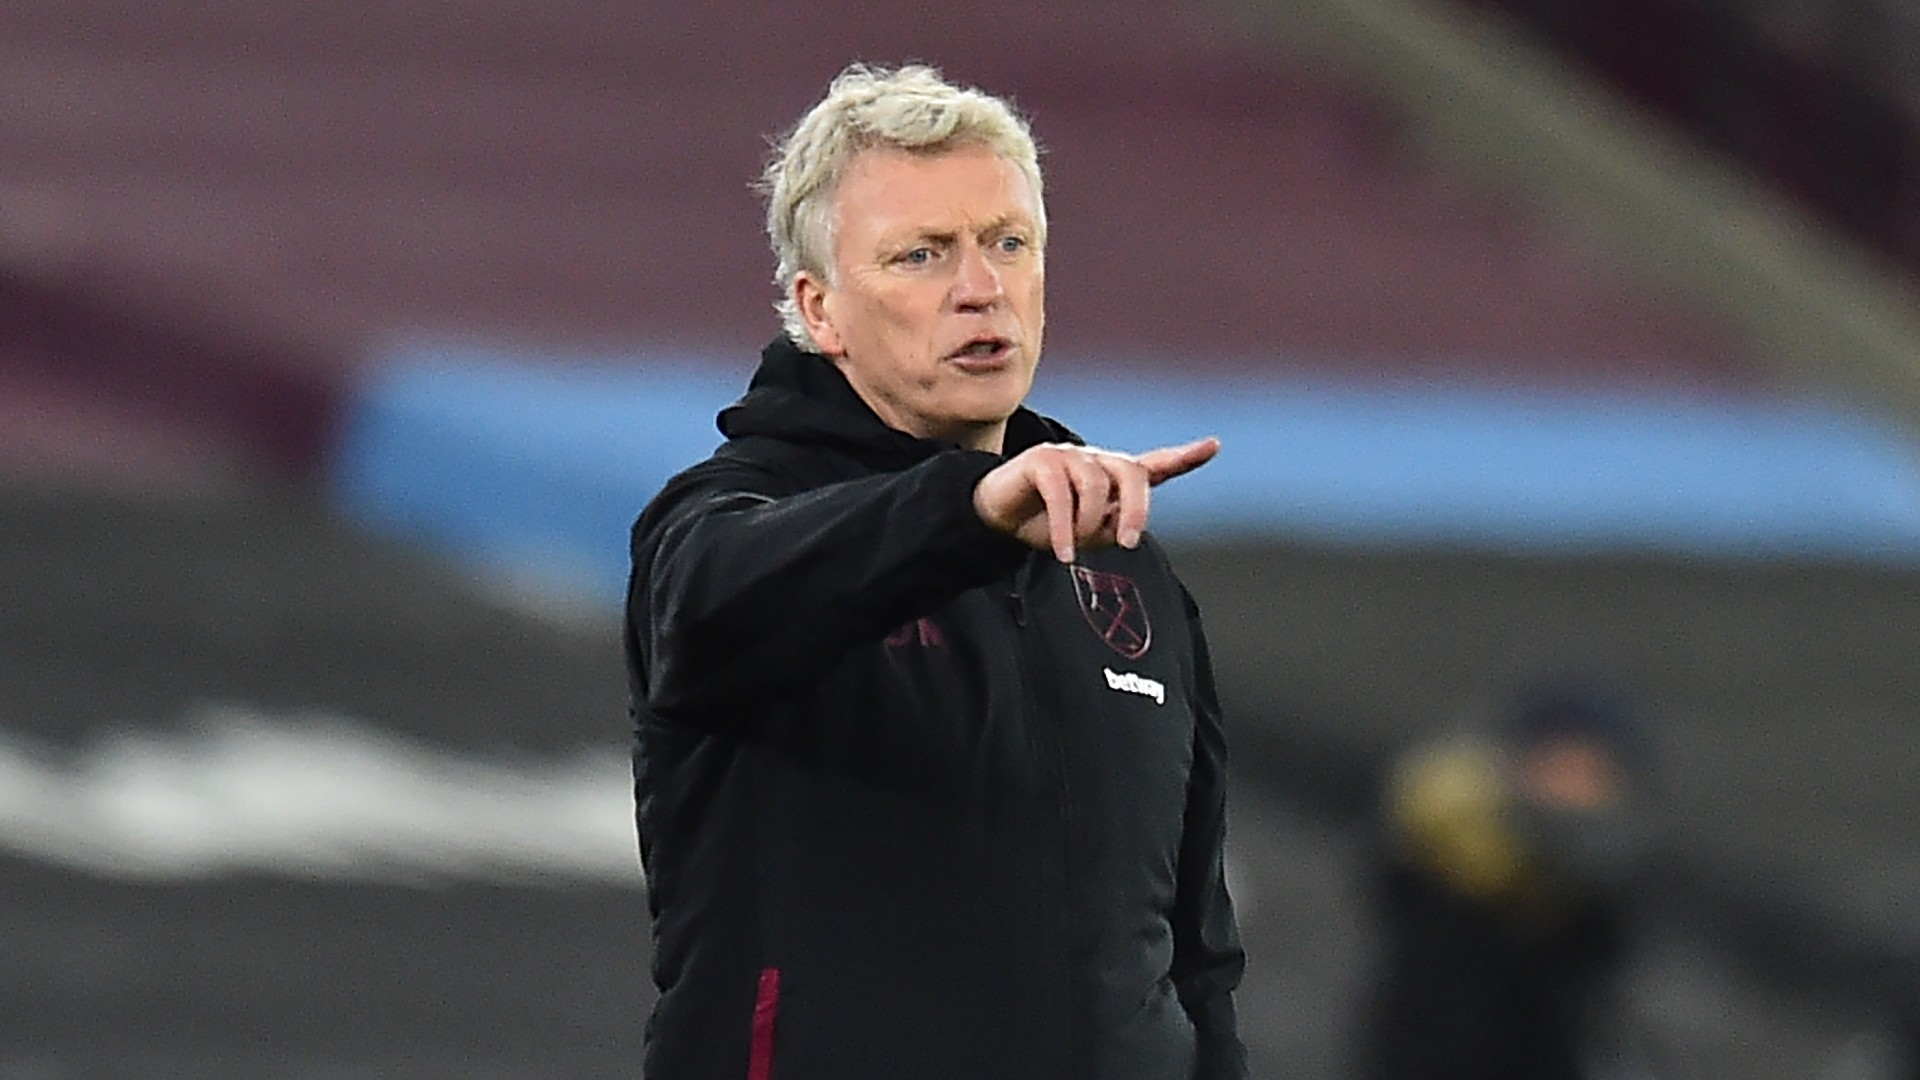 The Moyesiah! Ex-Man Utd boss leads West Ham to club-record halfway points total in Premier League